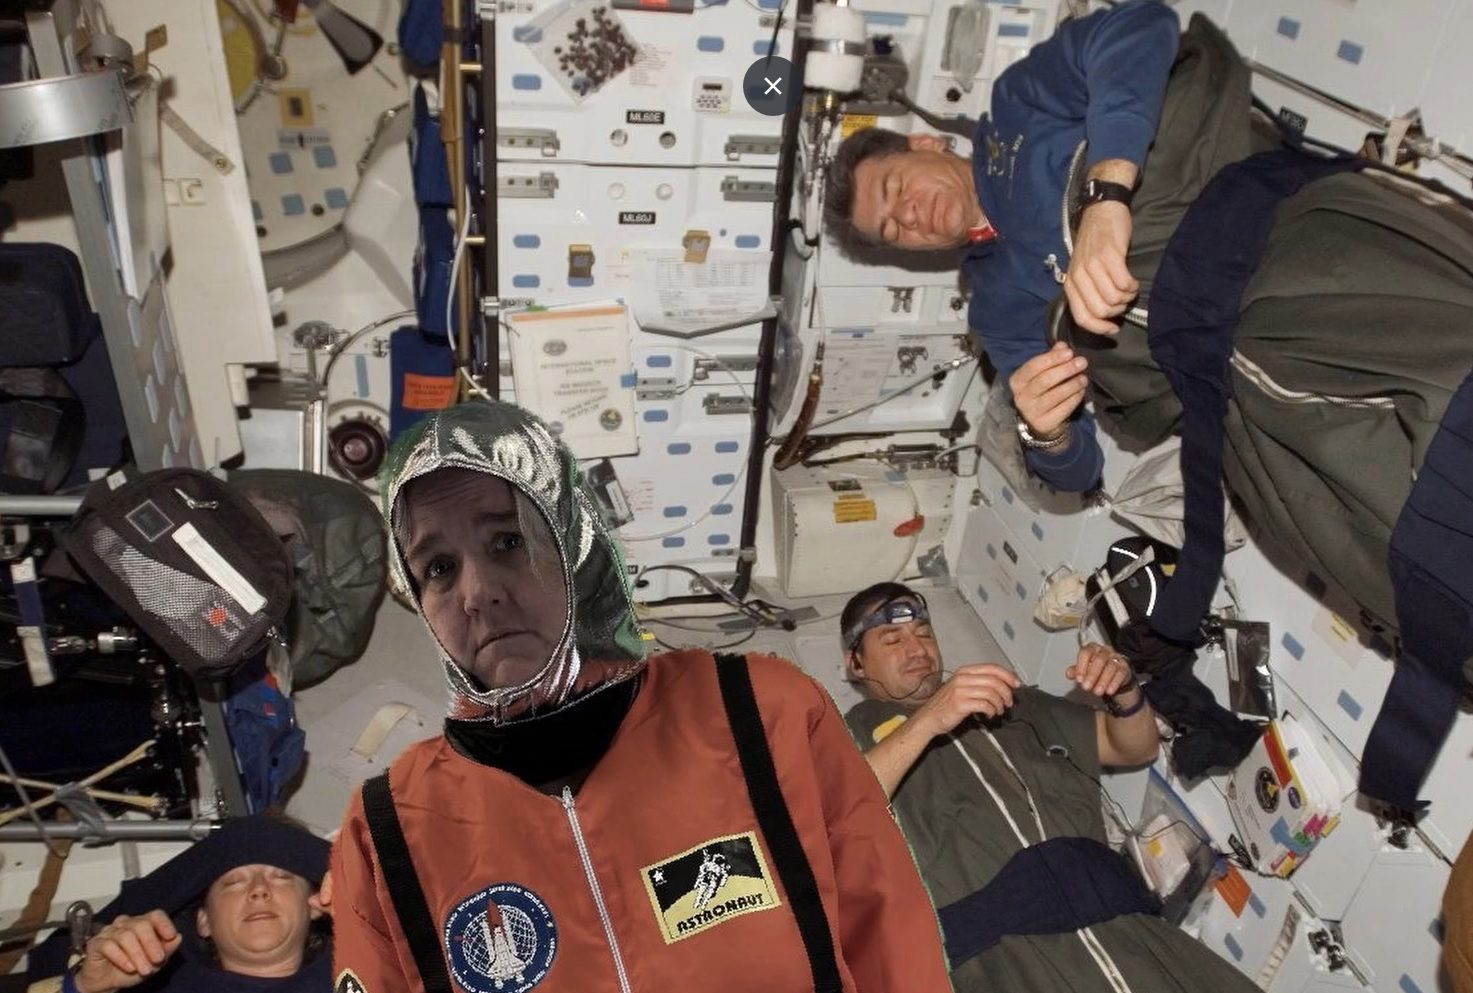 Expedition 37